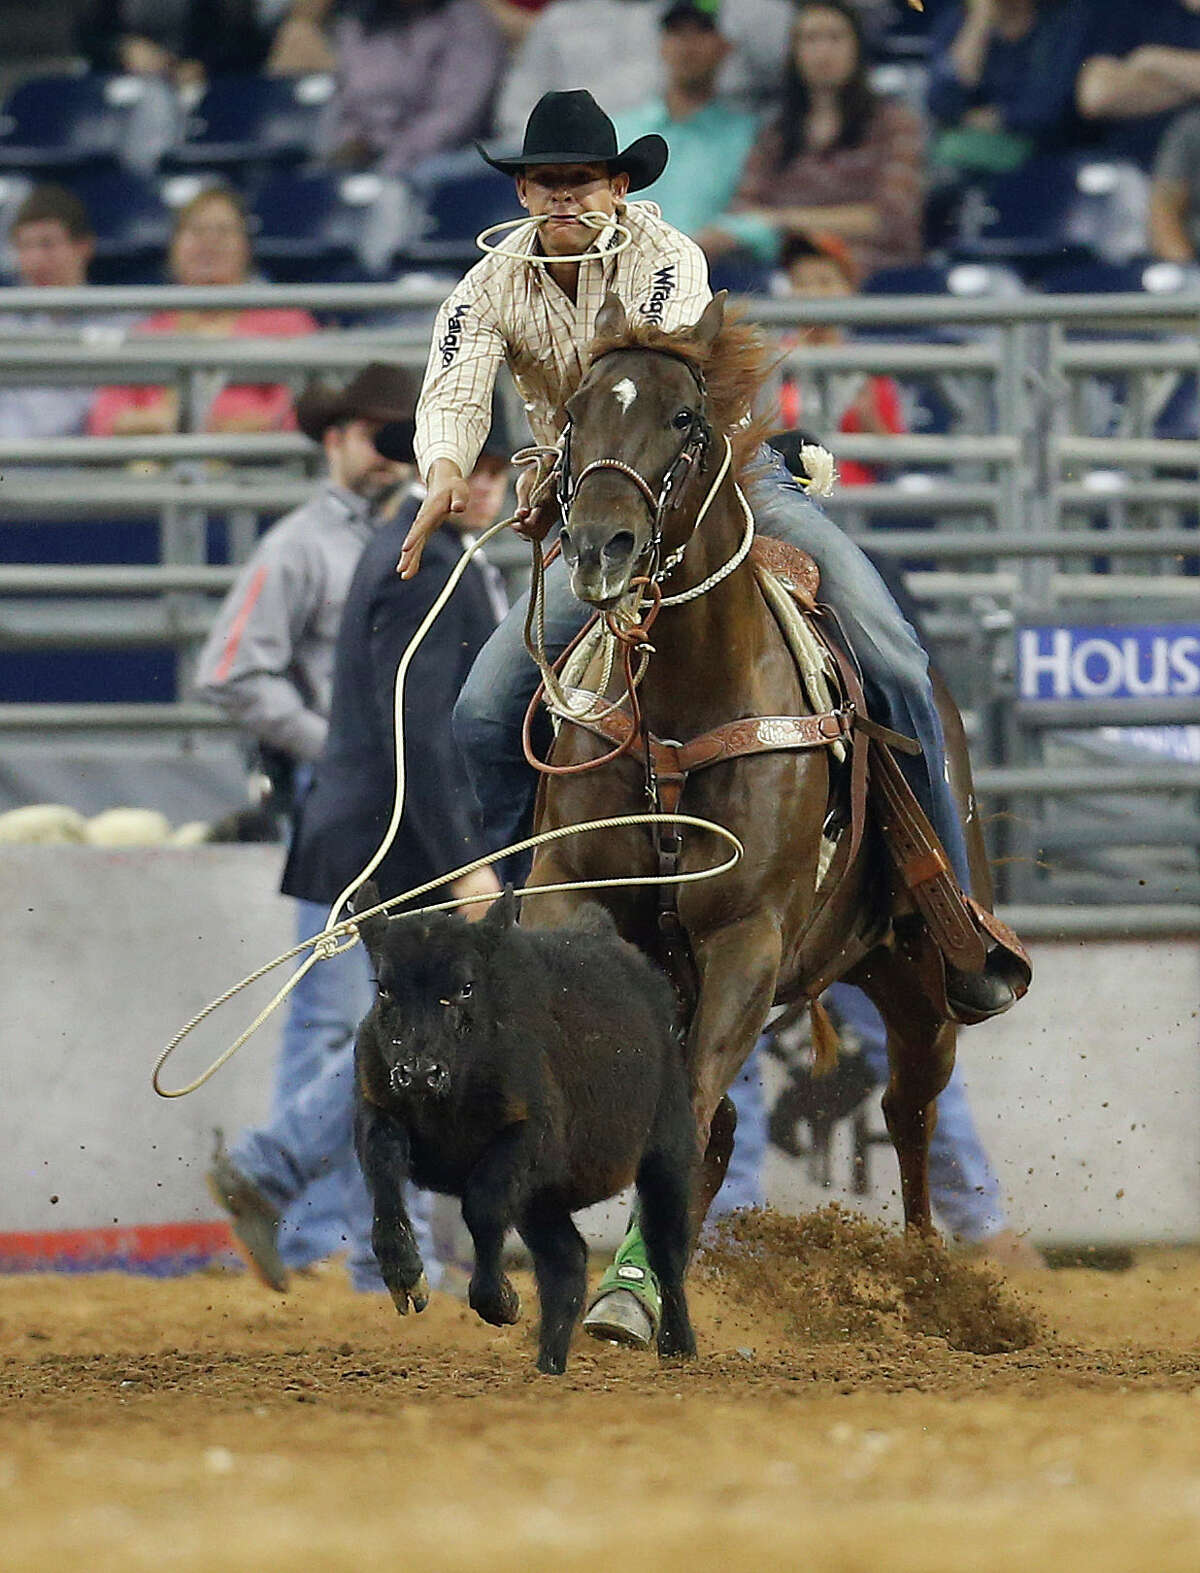 Marcos Costa competes in the tie-down roping event during the championship round of the Super Series IV at the Houston Livestock Show and Rodeo at NRG Stadium, Saturday, March 12, 2016. ( Karen Warren / Houston Chronicle )